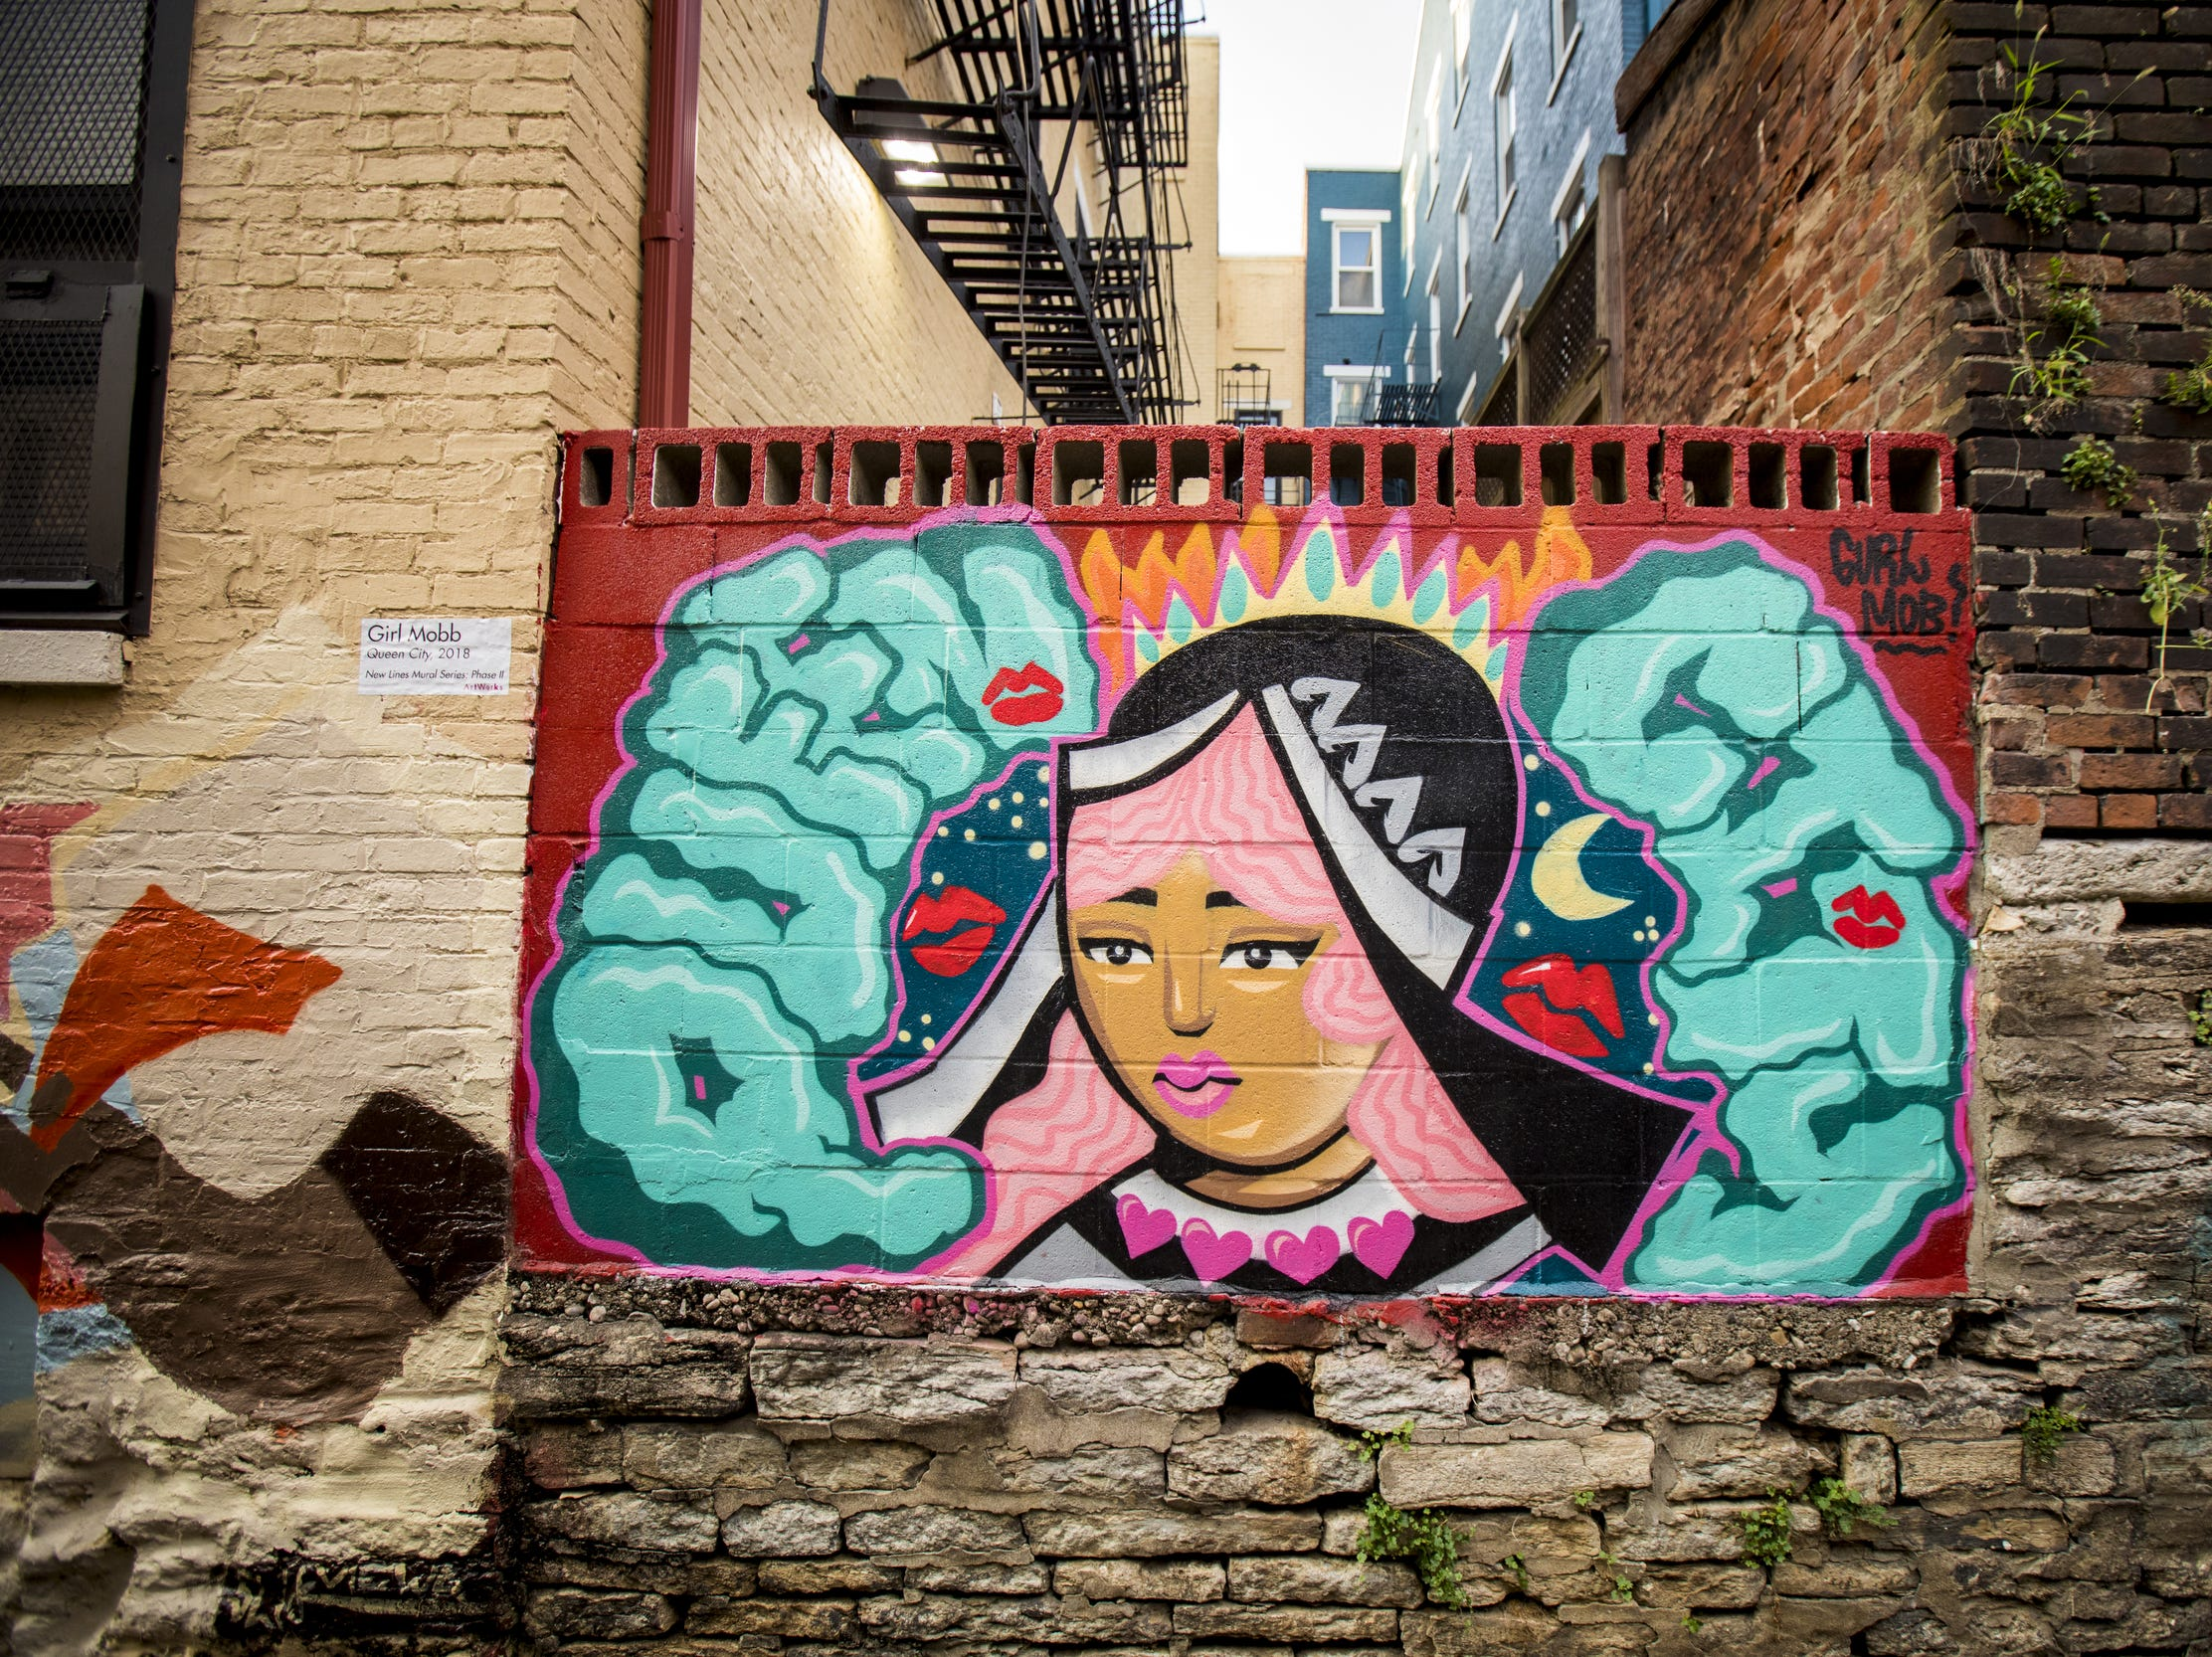 Wednesday, September 19, 2018: ÒQueen CityÓ designed by Girl Mobb is featured in Bolivar Alley in Pendleton as part of New Lines Alleyway Murals: Phase II by ArtWorks.